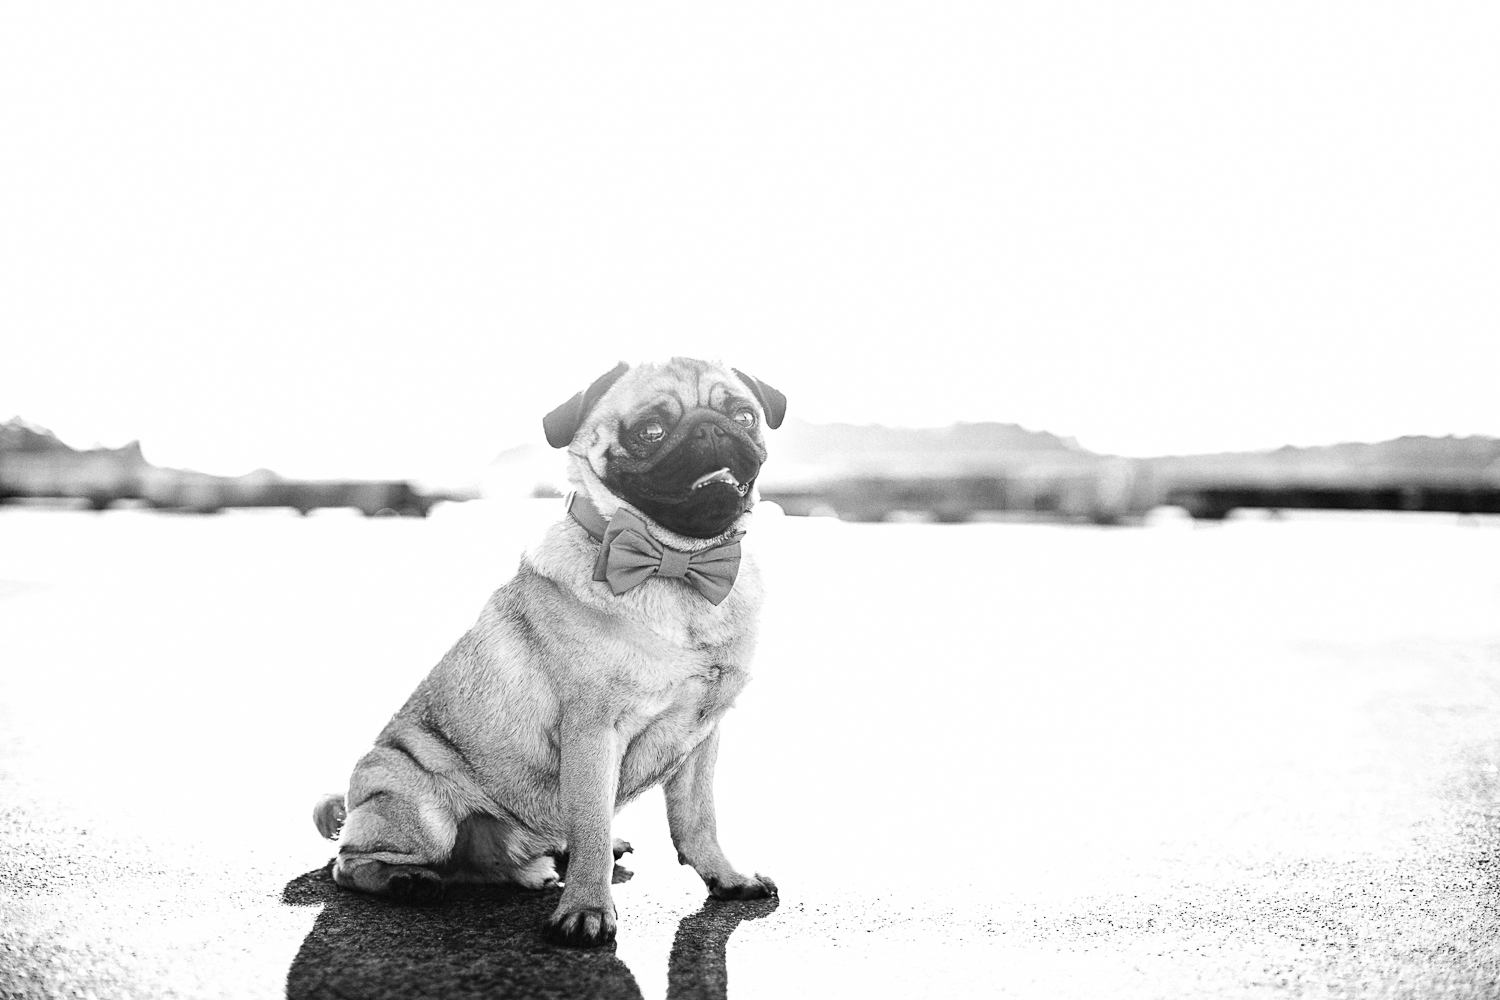 twoguineapigs_photography_oh_jaffa_pug_contact_blacandkwhite